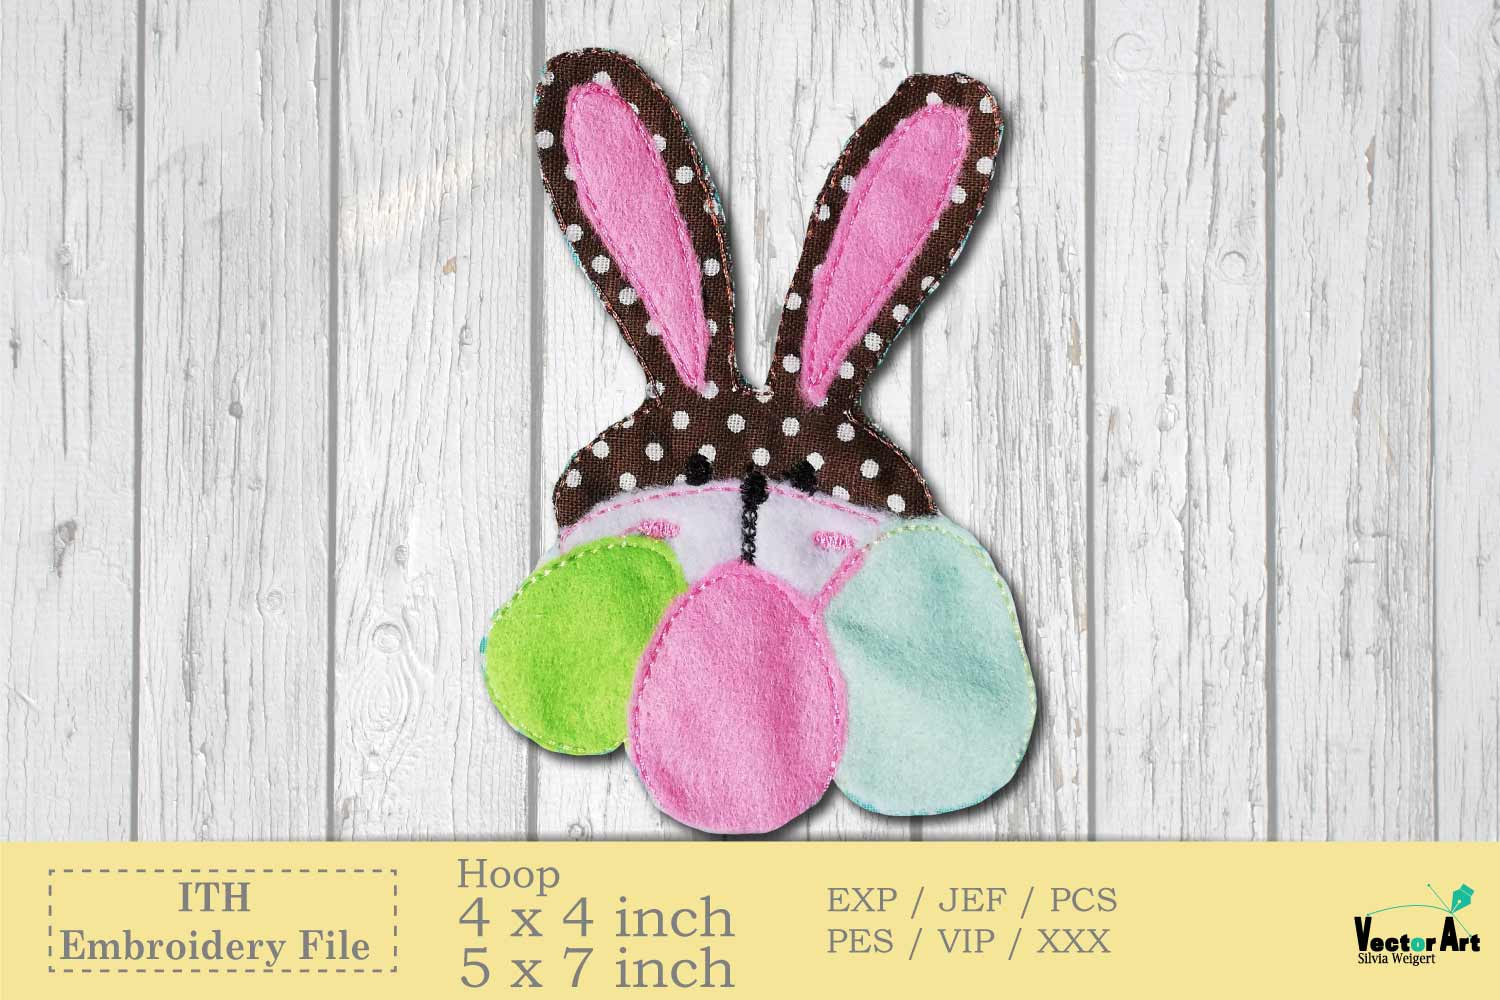 ITH Easter Bundle - Machine Embroidery Files - 10 Projects example image 6